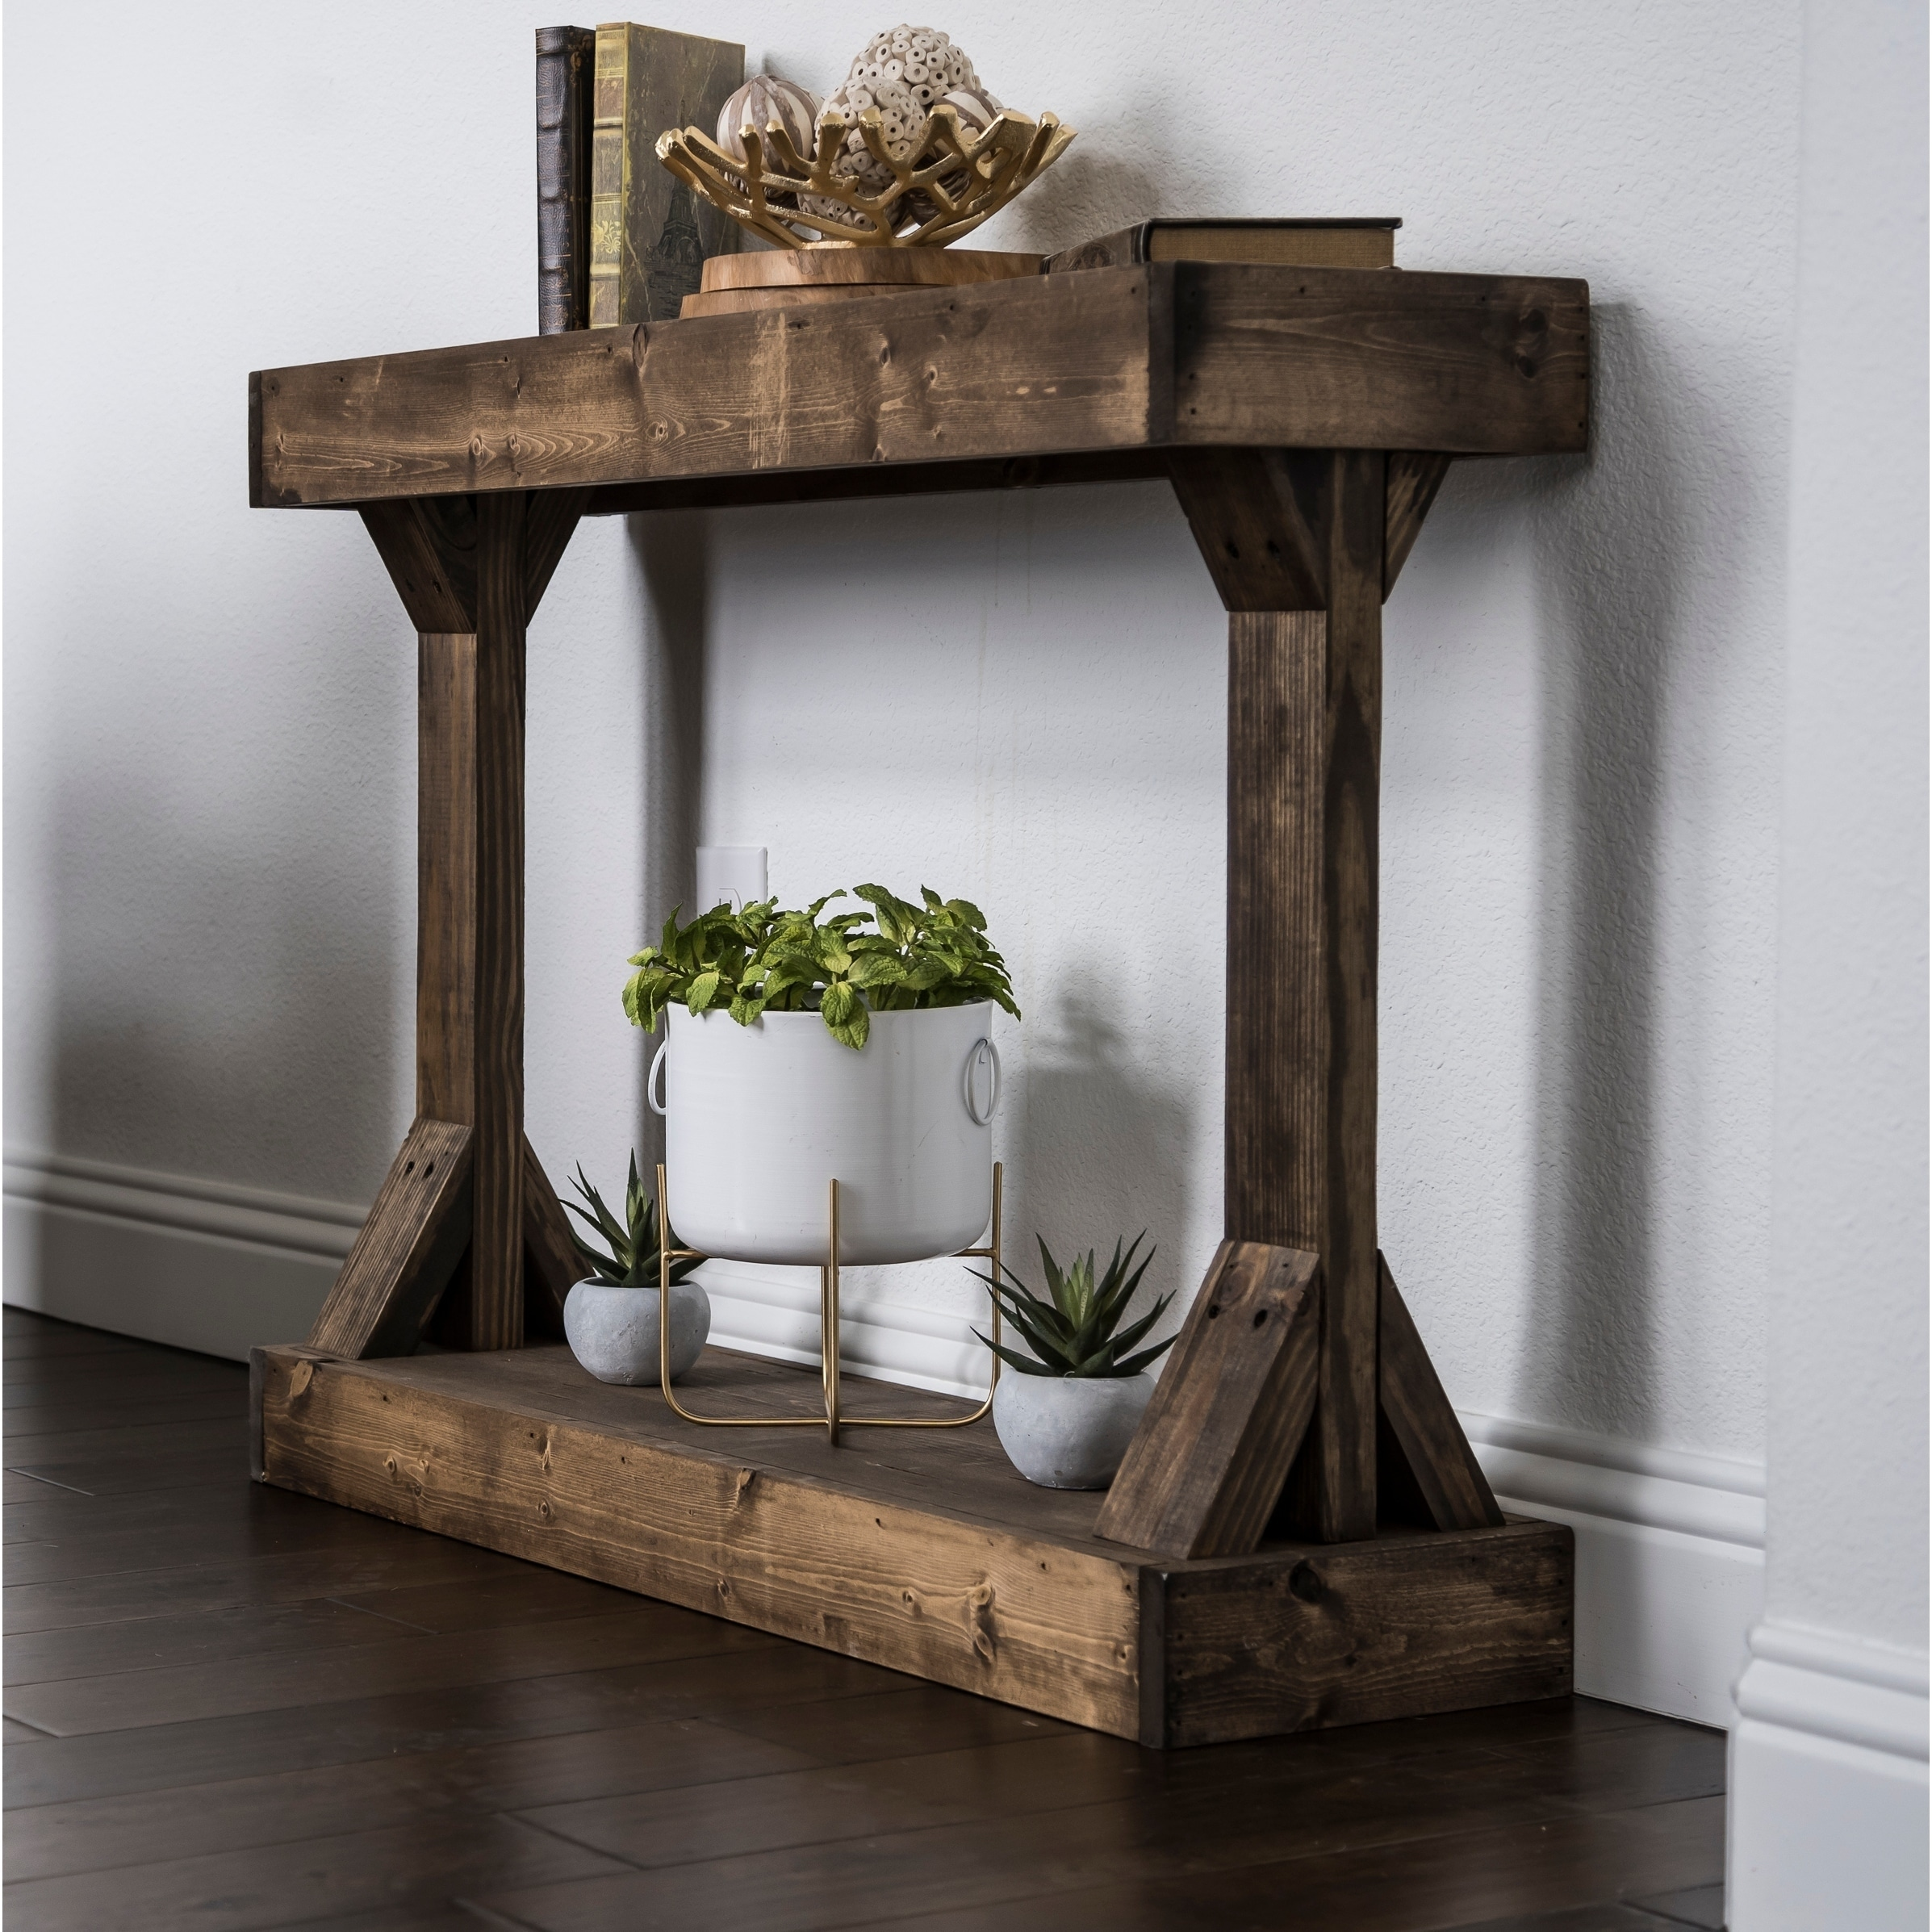 Terrific Handmade Barb Small Console Table Solid Wood Gamerscity Chair Design For Home Gamerscityorg